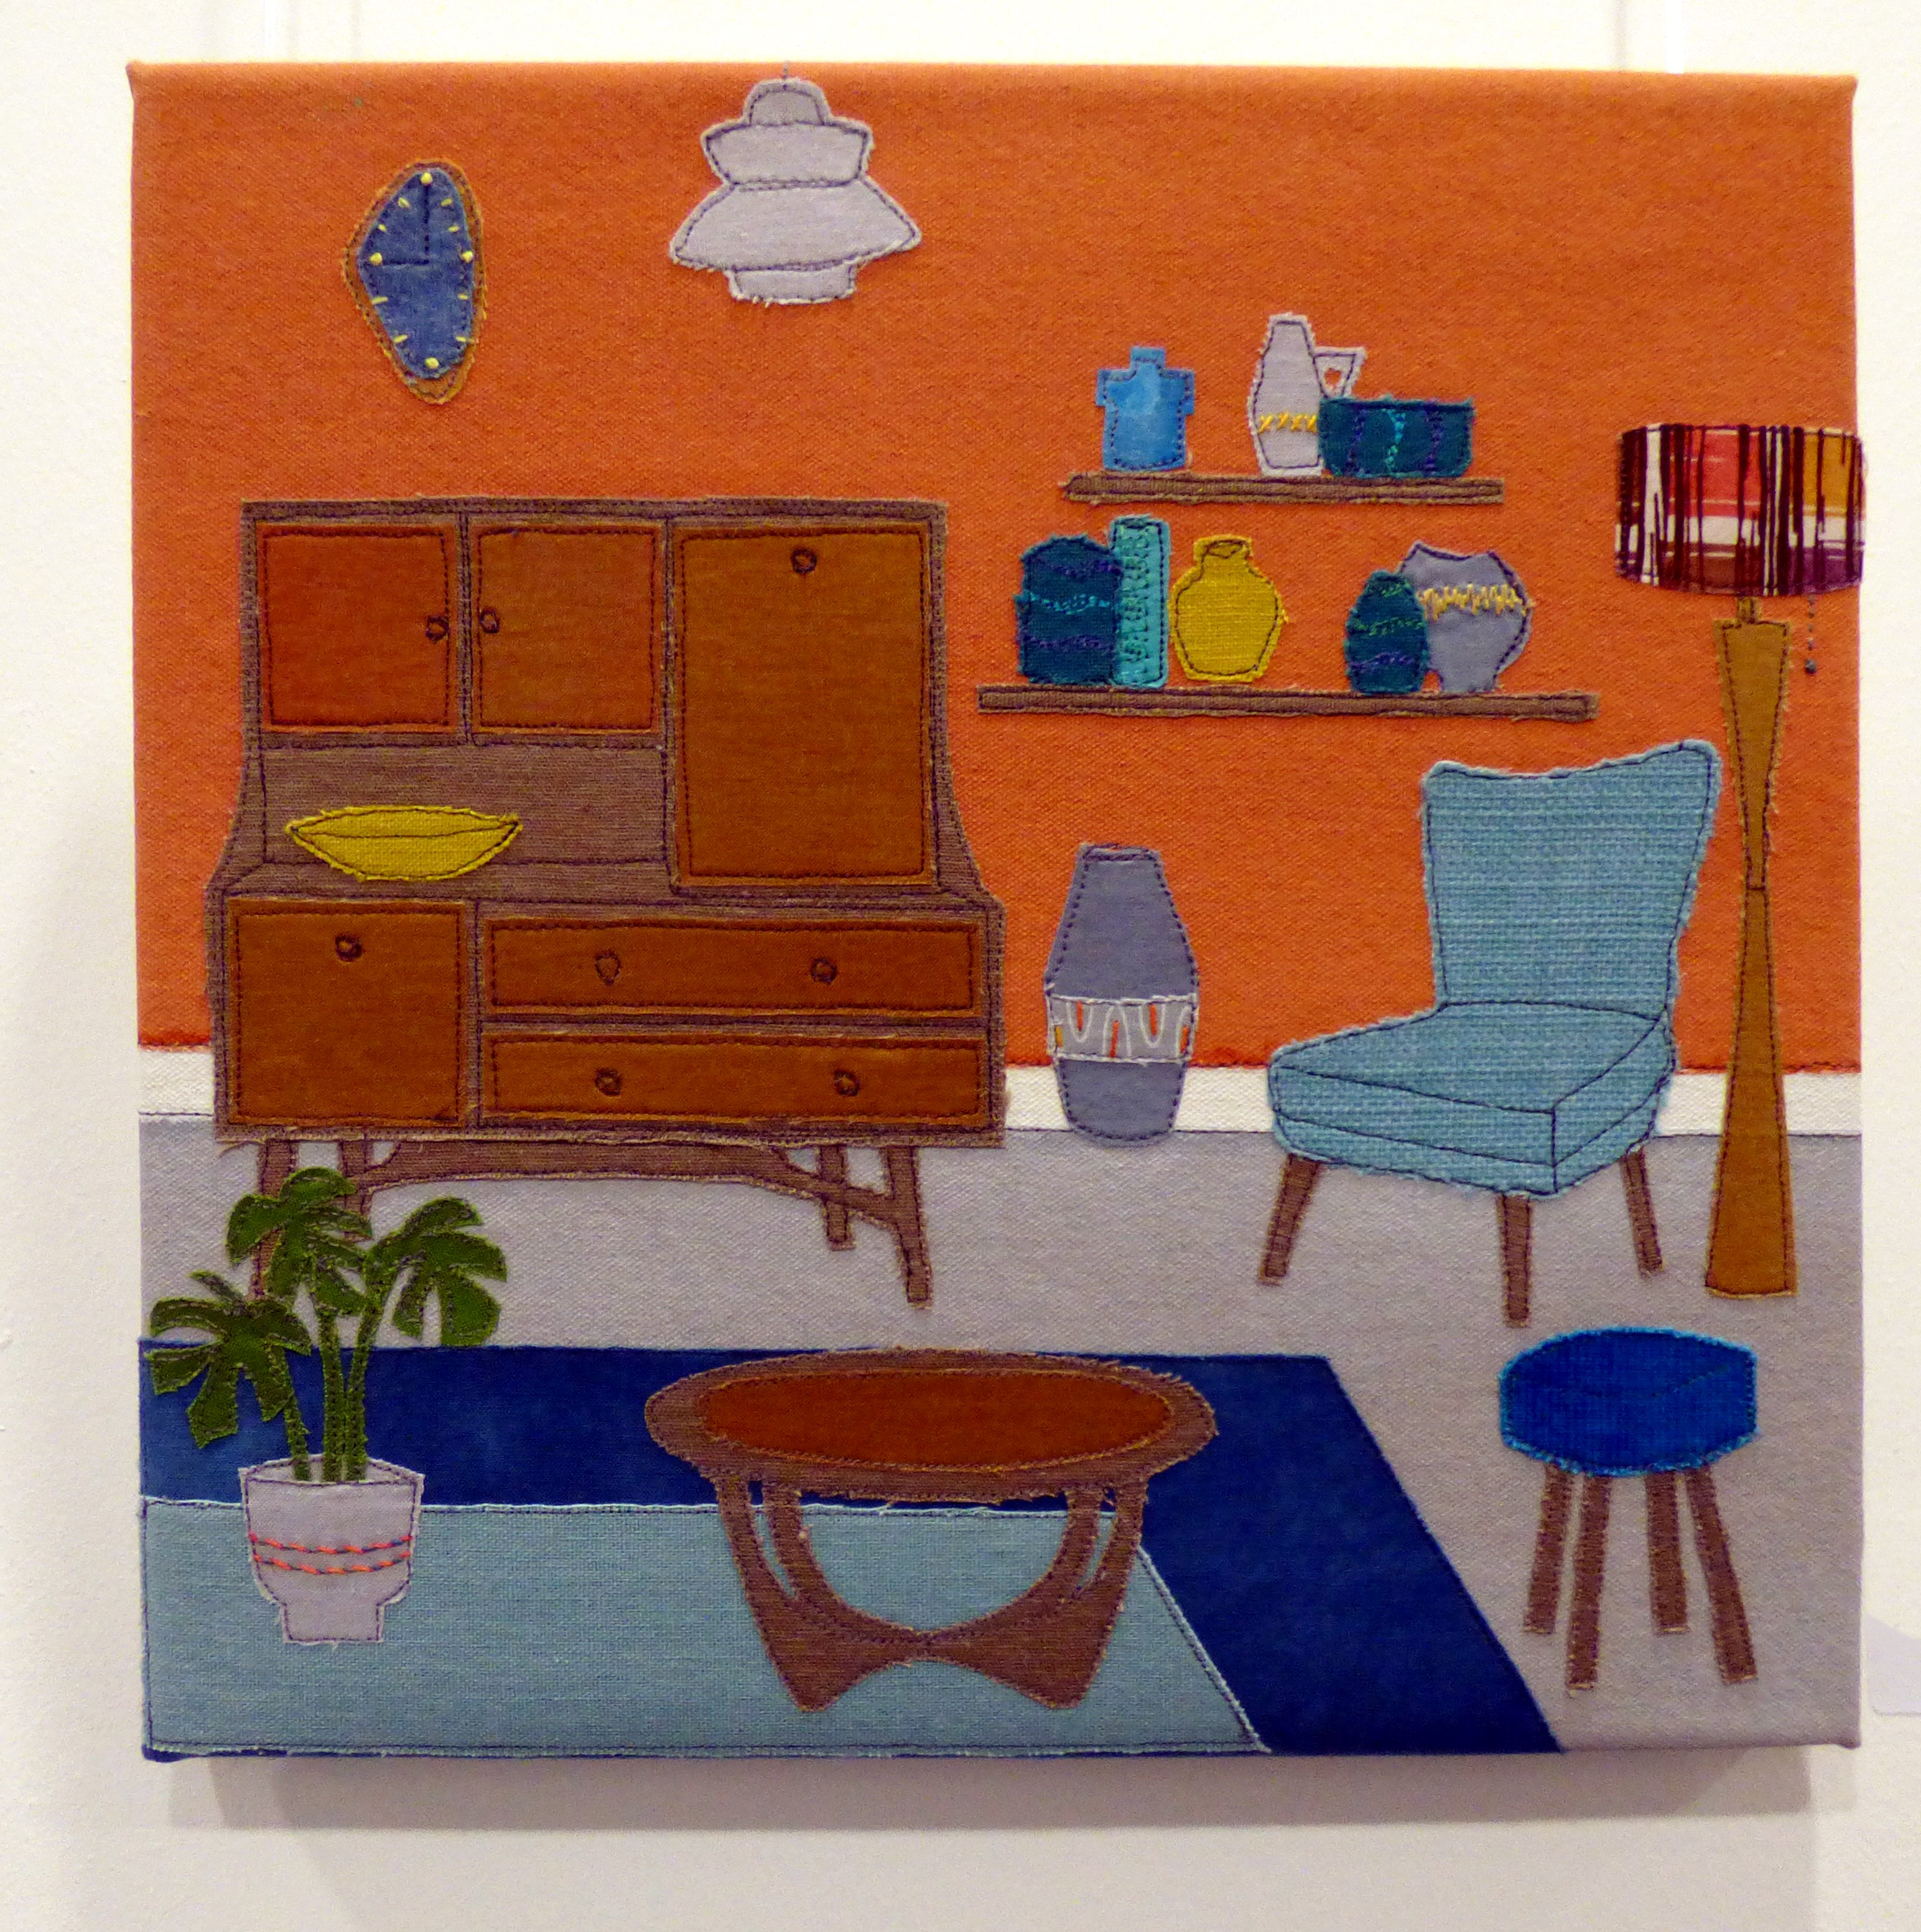 MID CENTURY RETRO by Linda Young, collage and stitch, Ten Plus @ The Atkinson, 2018